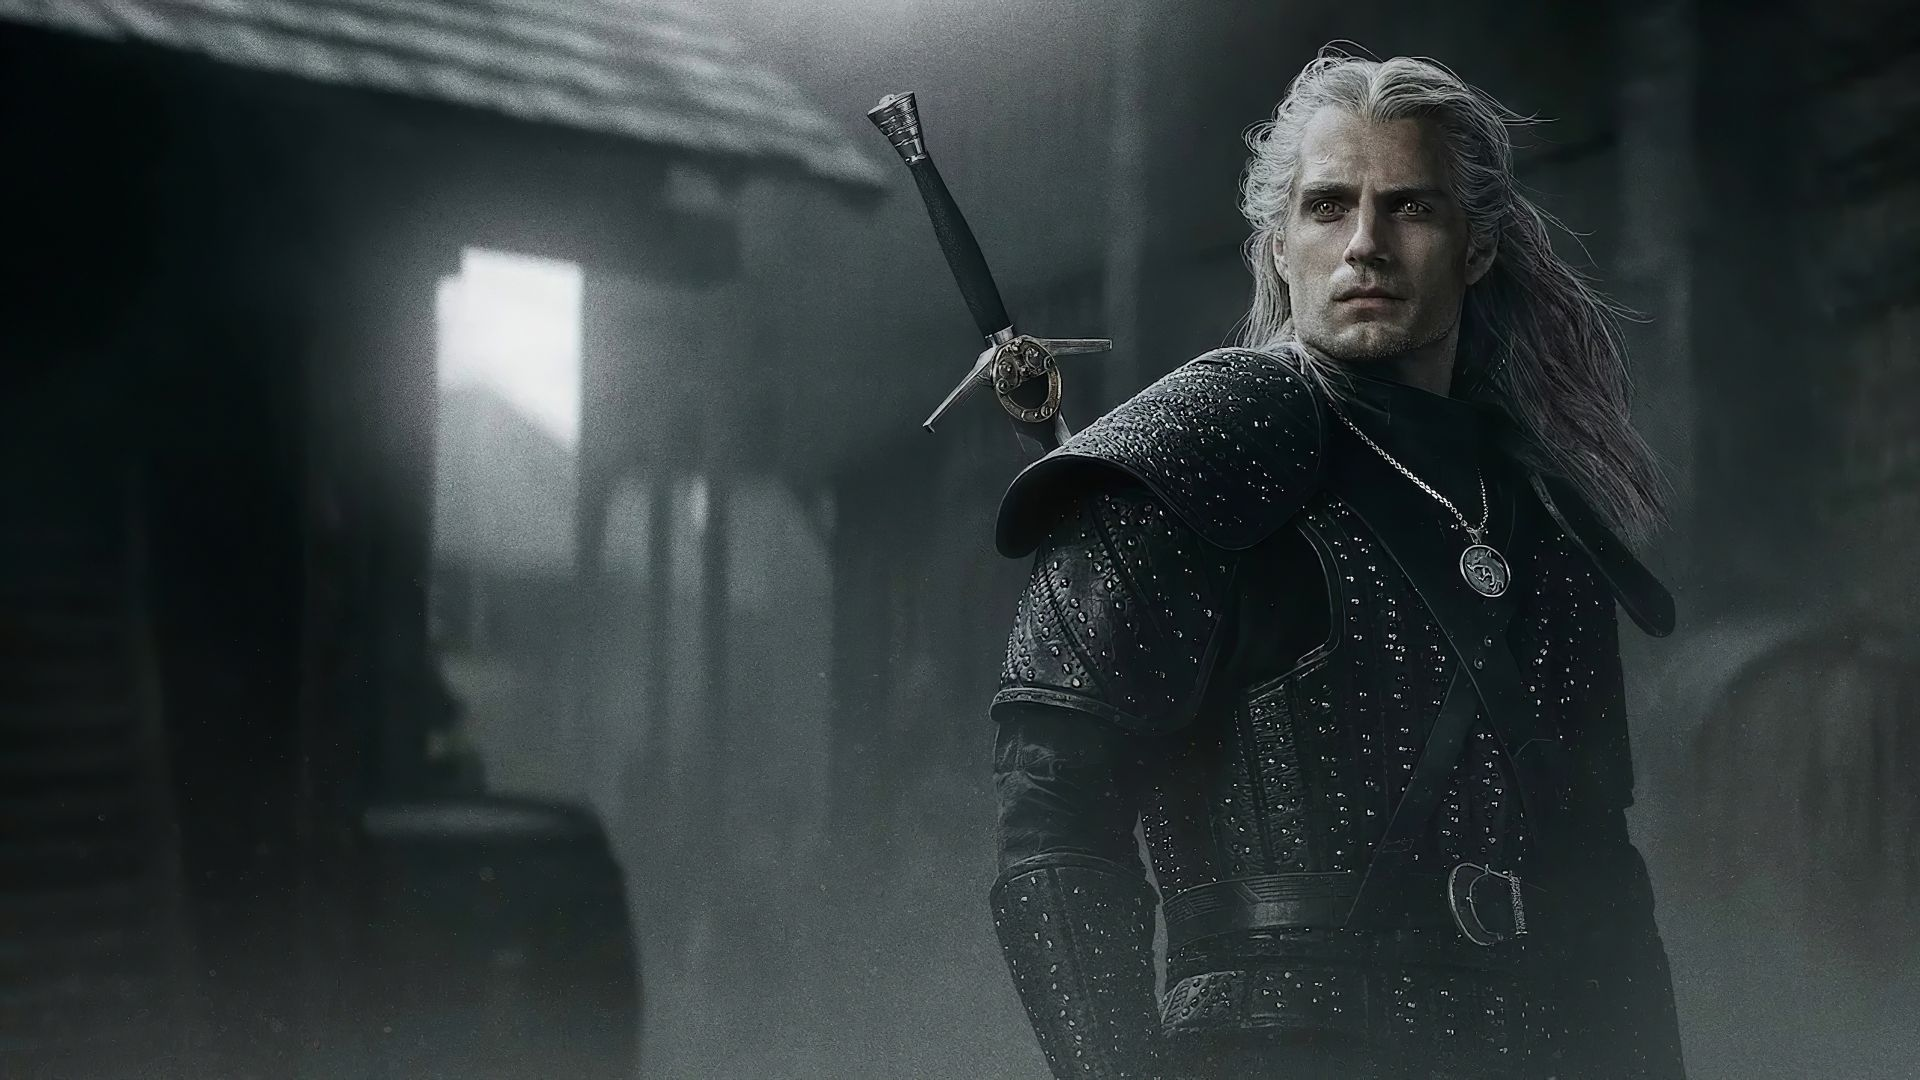 Ведьмак, The Witcher, poster, Henry Cavill, 5K (horizontal)